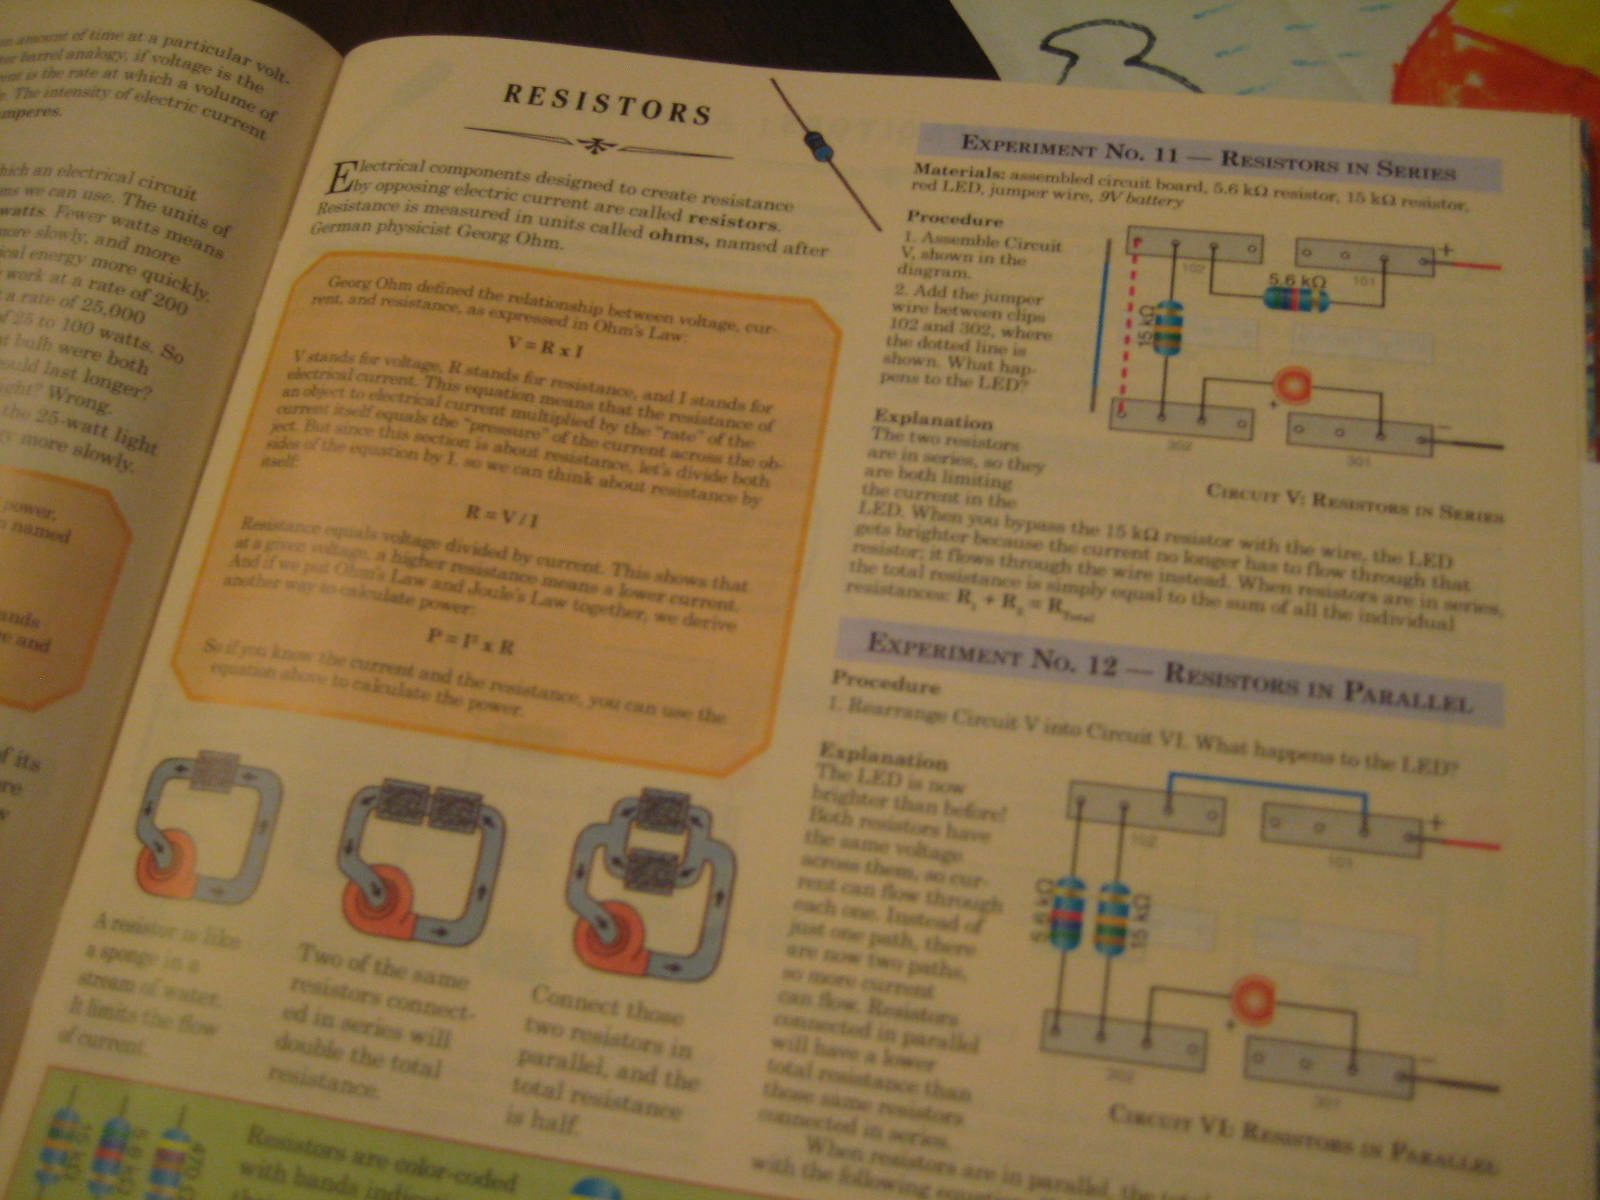 Theresas Trivia March 2012 Logic Gate Diagram In Gorgeous Schematic Actually This Manual Had Great Pictures Diagrams And Explanations Of Why The Experiments Work Right Before Colin Went To Bed They Were Doing An